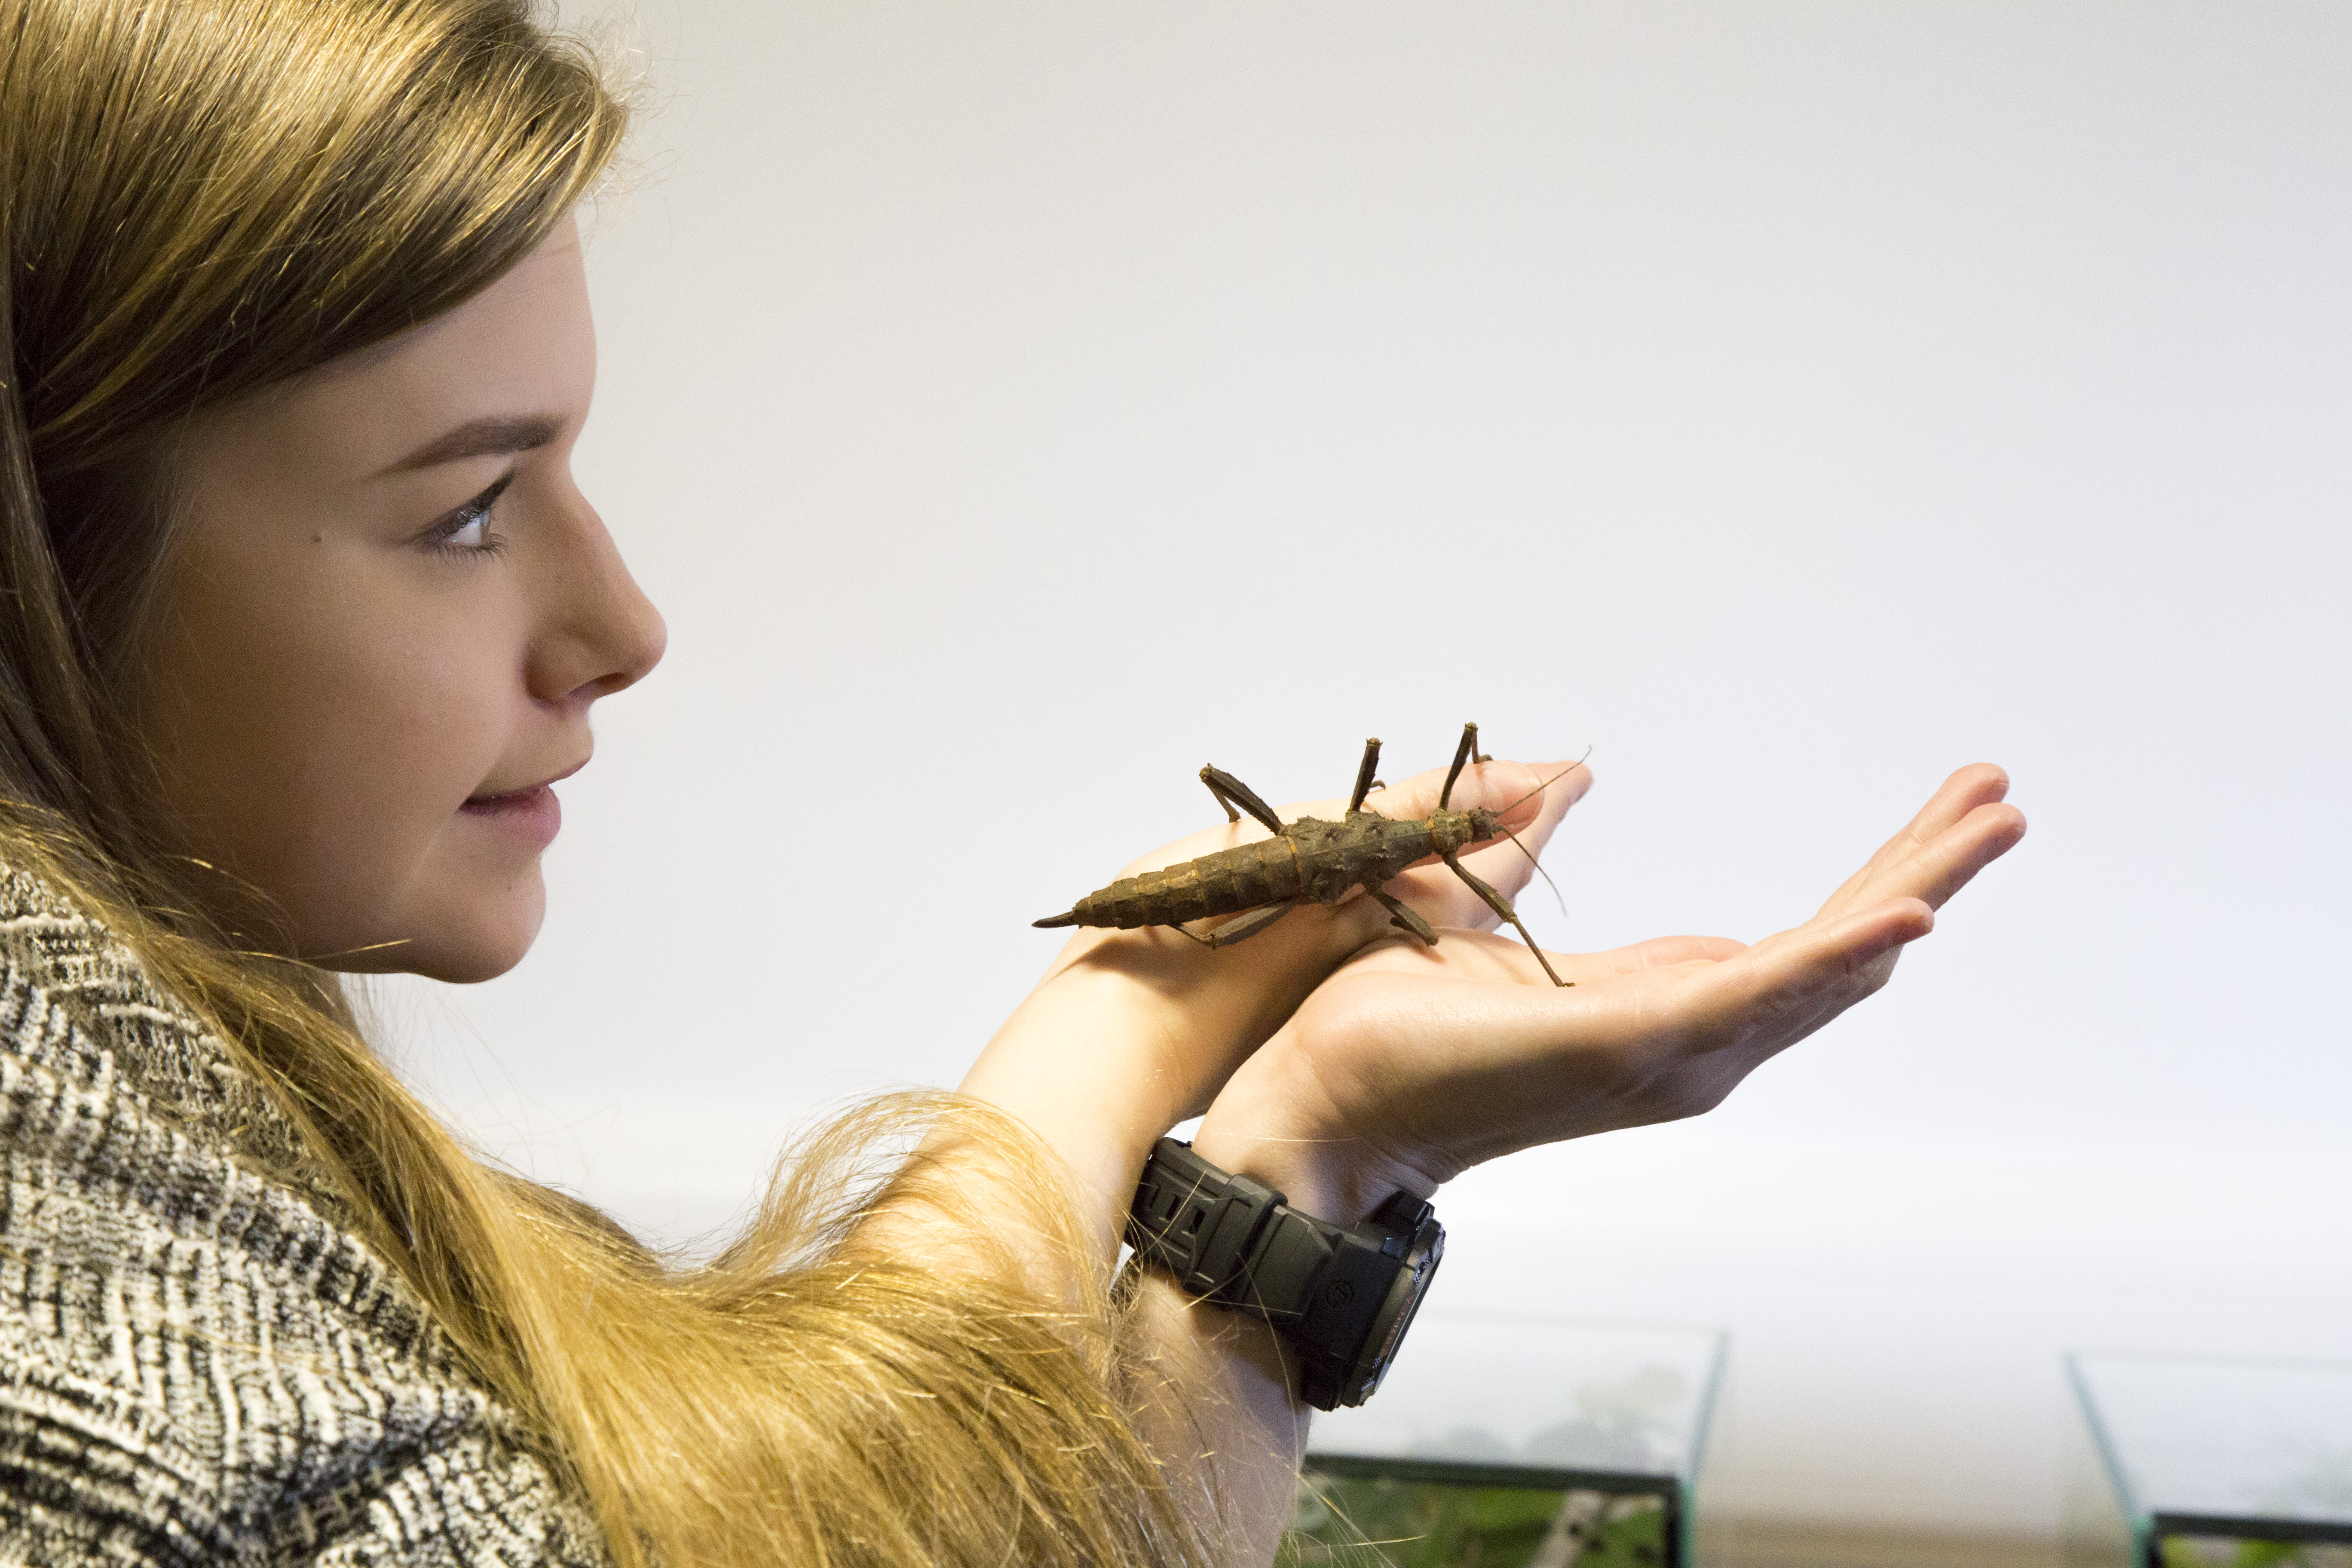 Girl holding stick insect at EntoSci